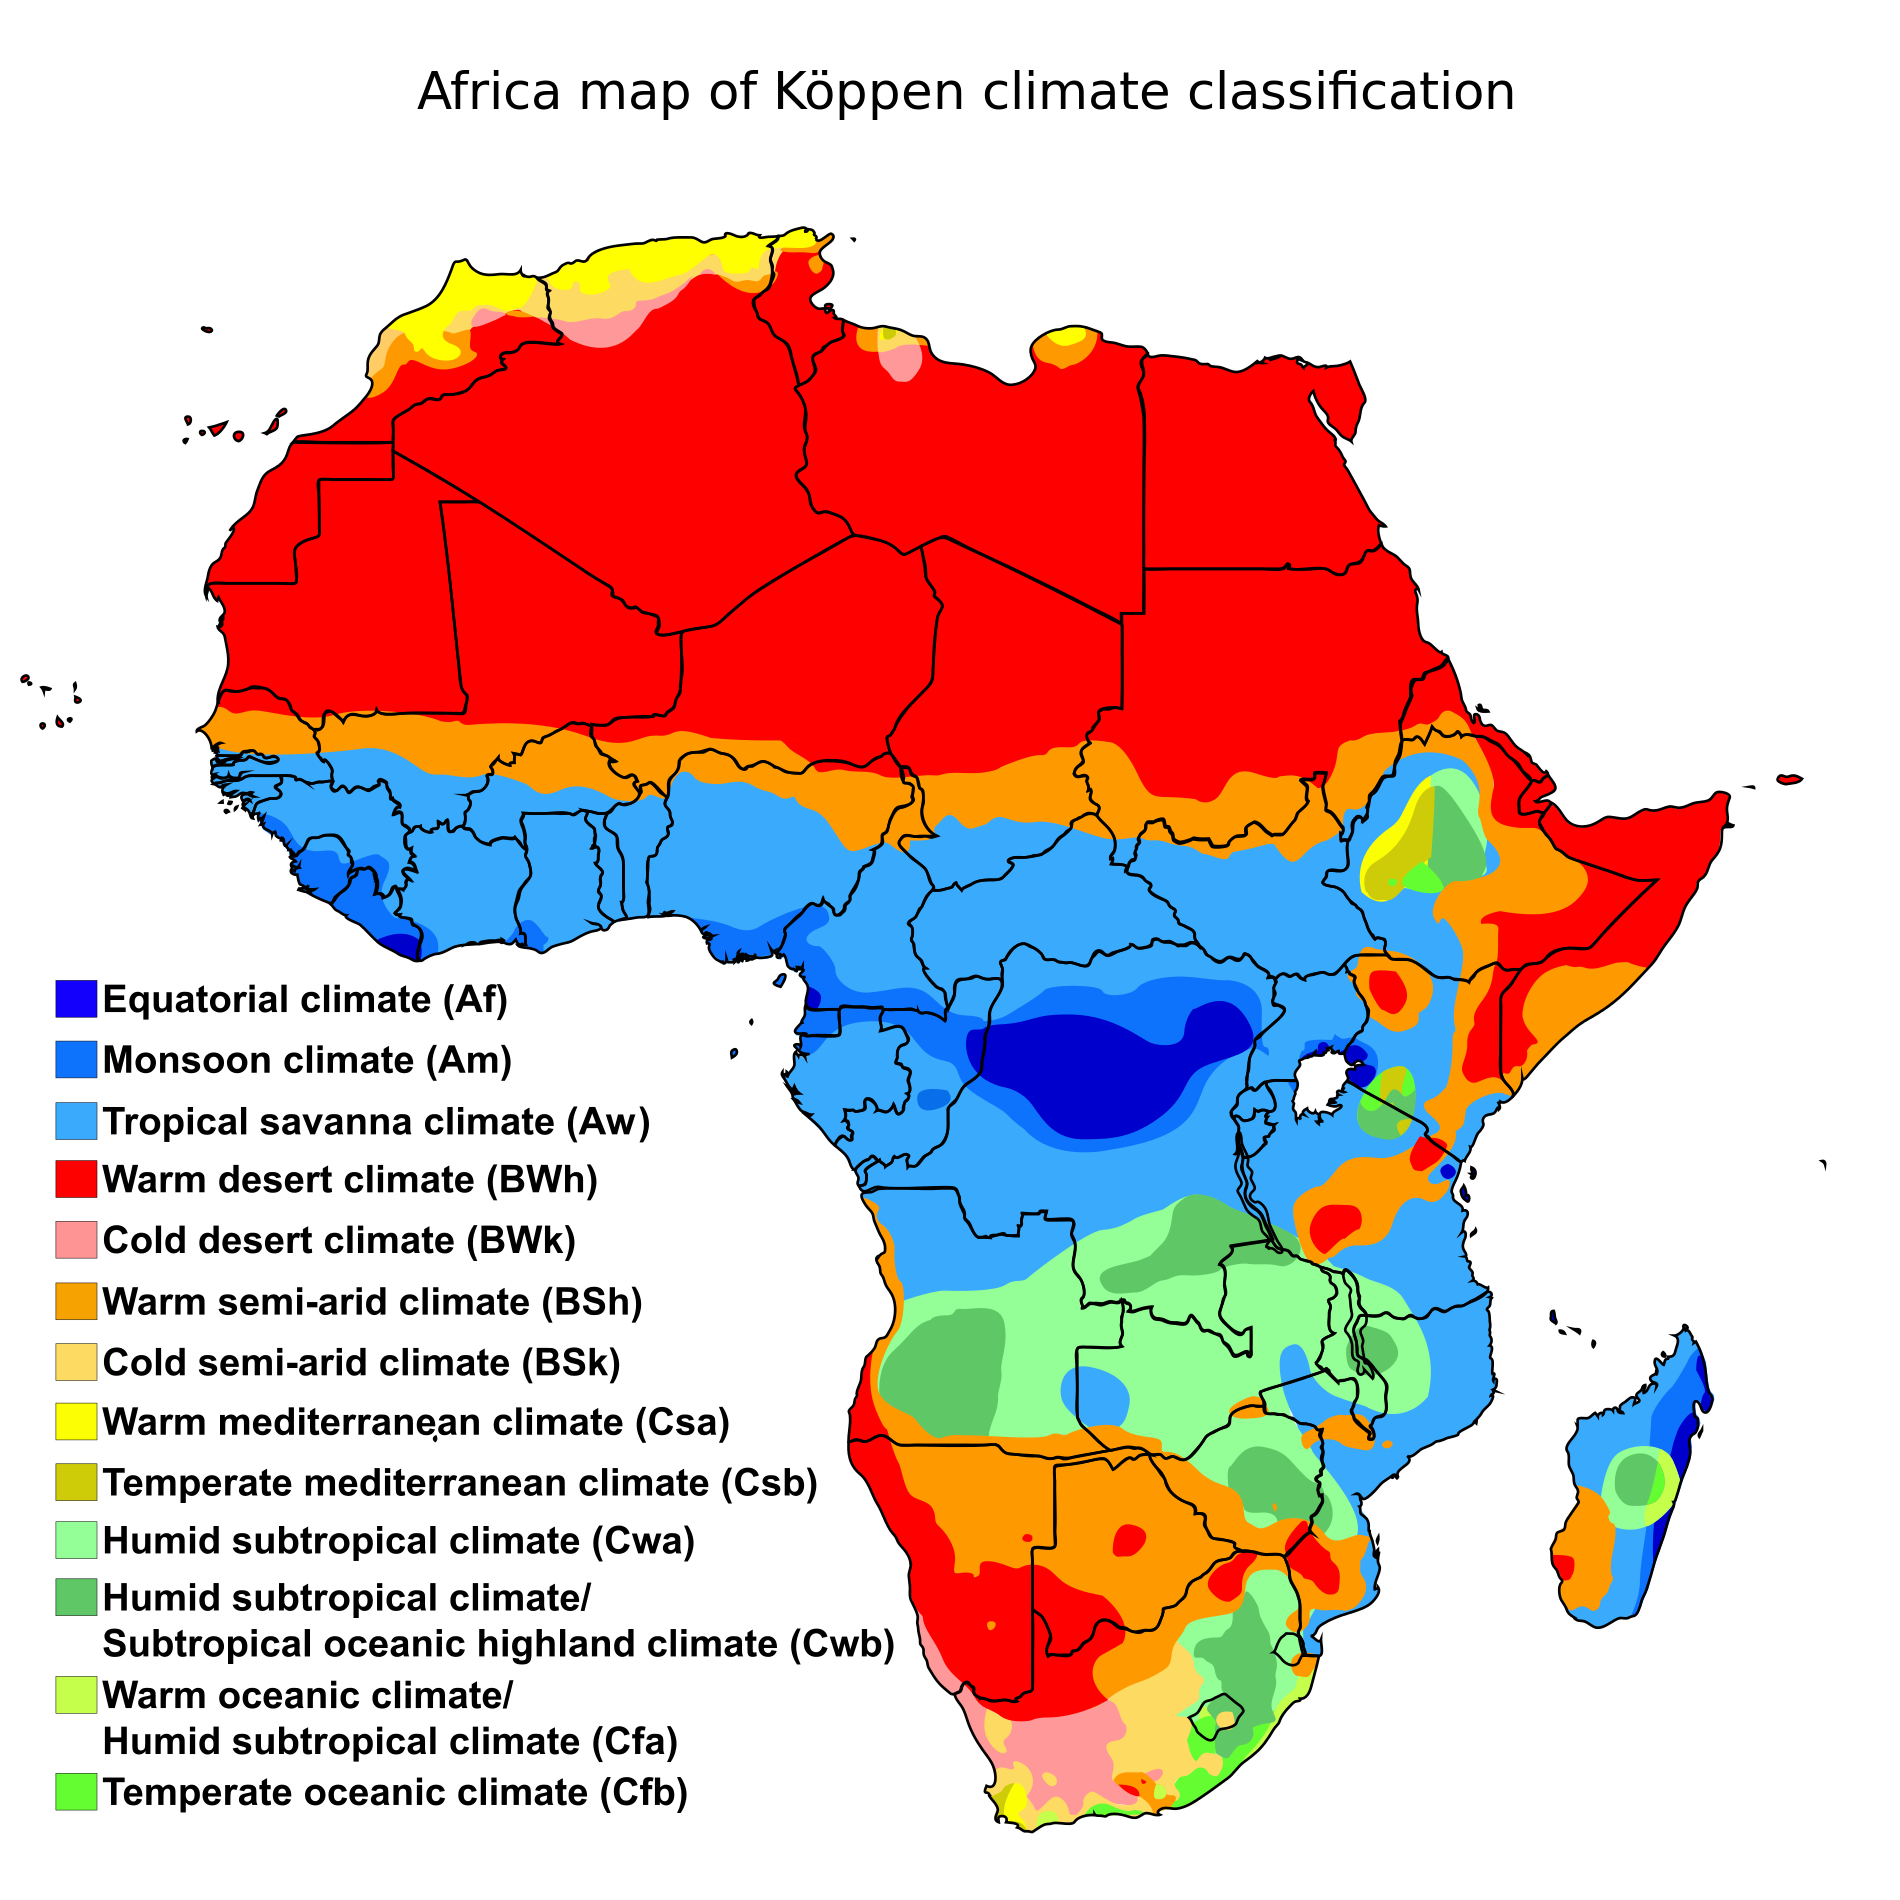 Africa_map_of_Köppen_climate_classification | Working Title